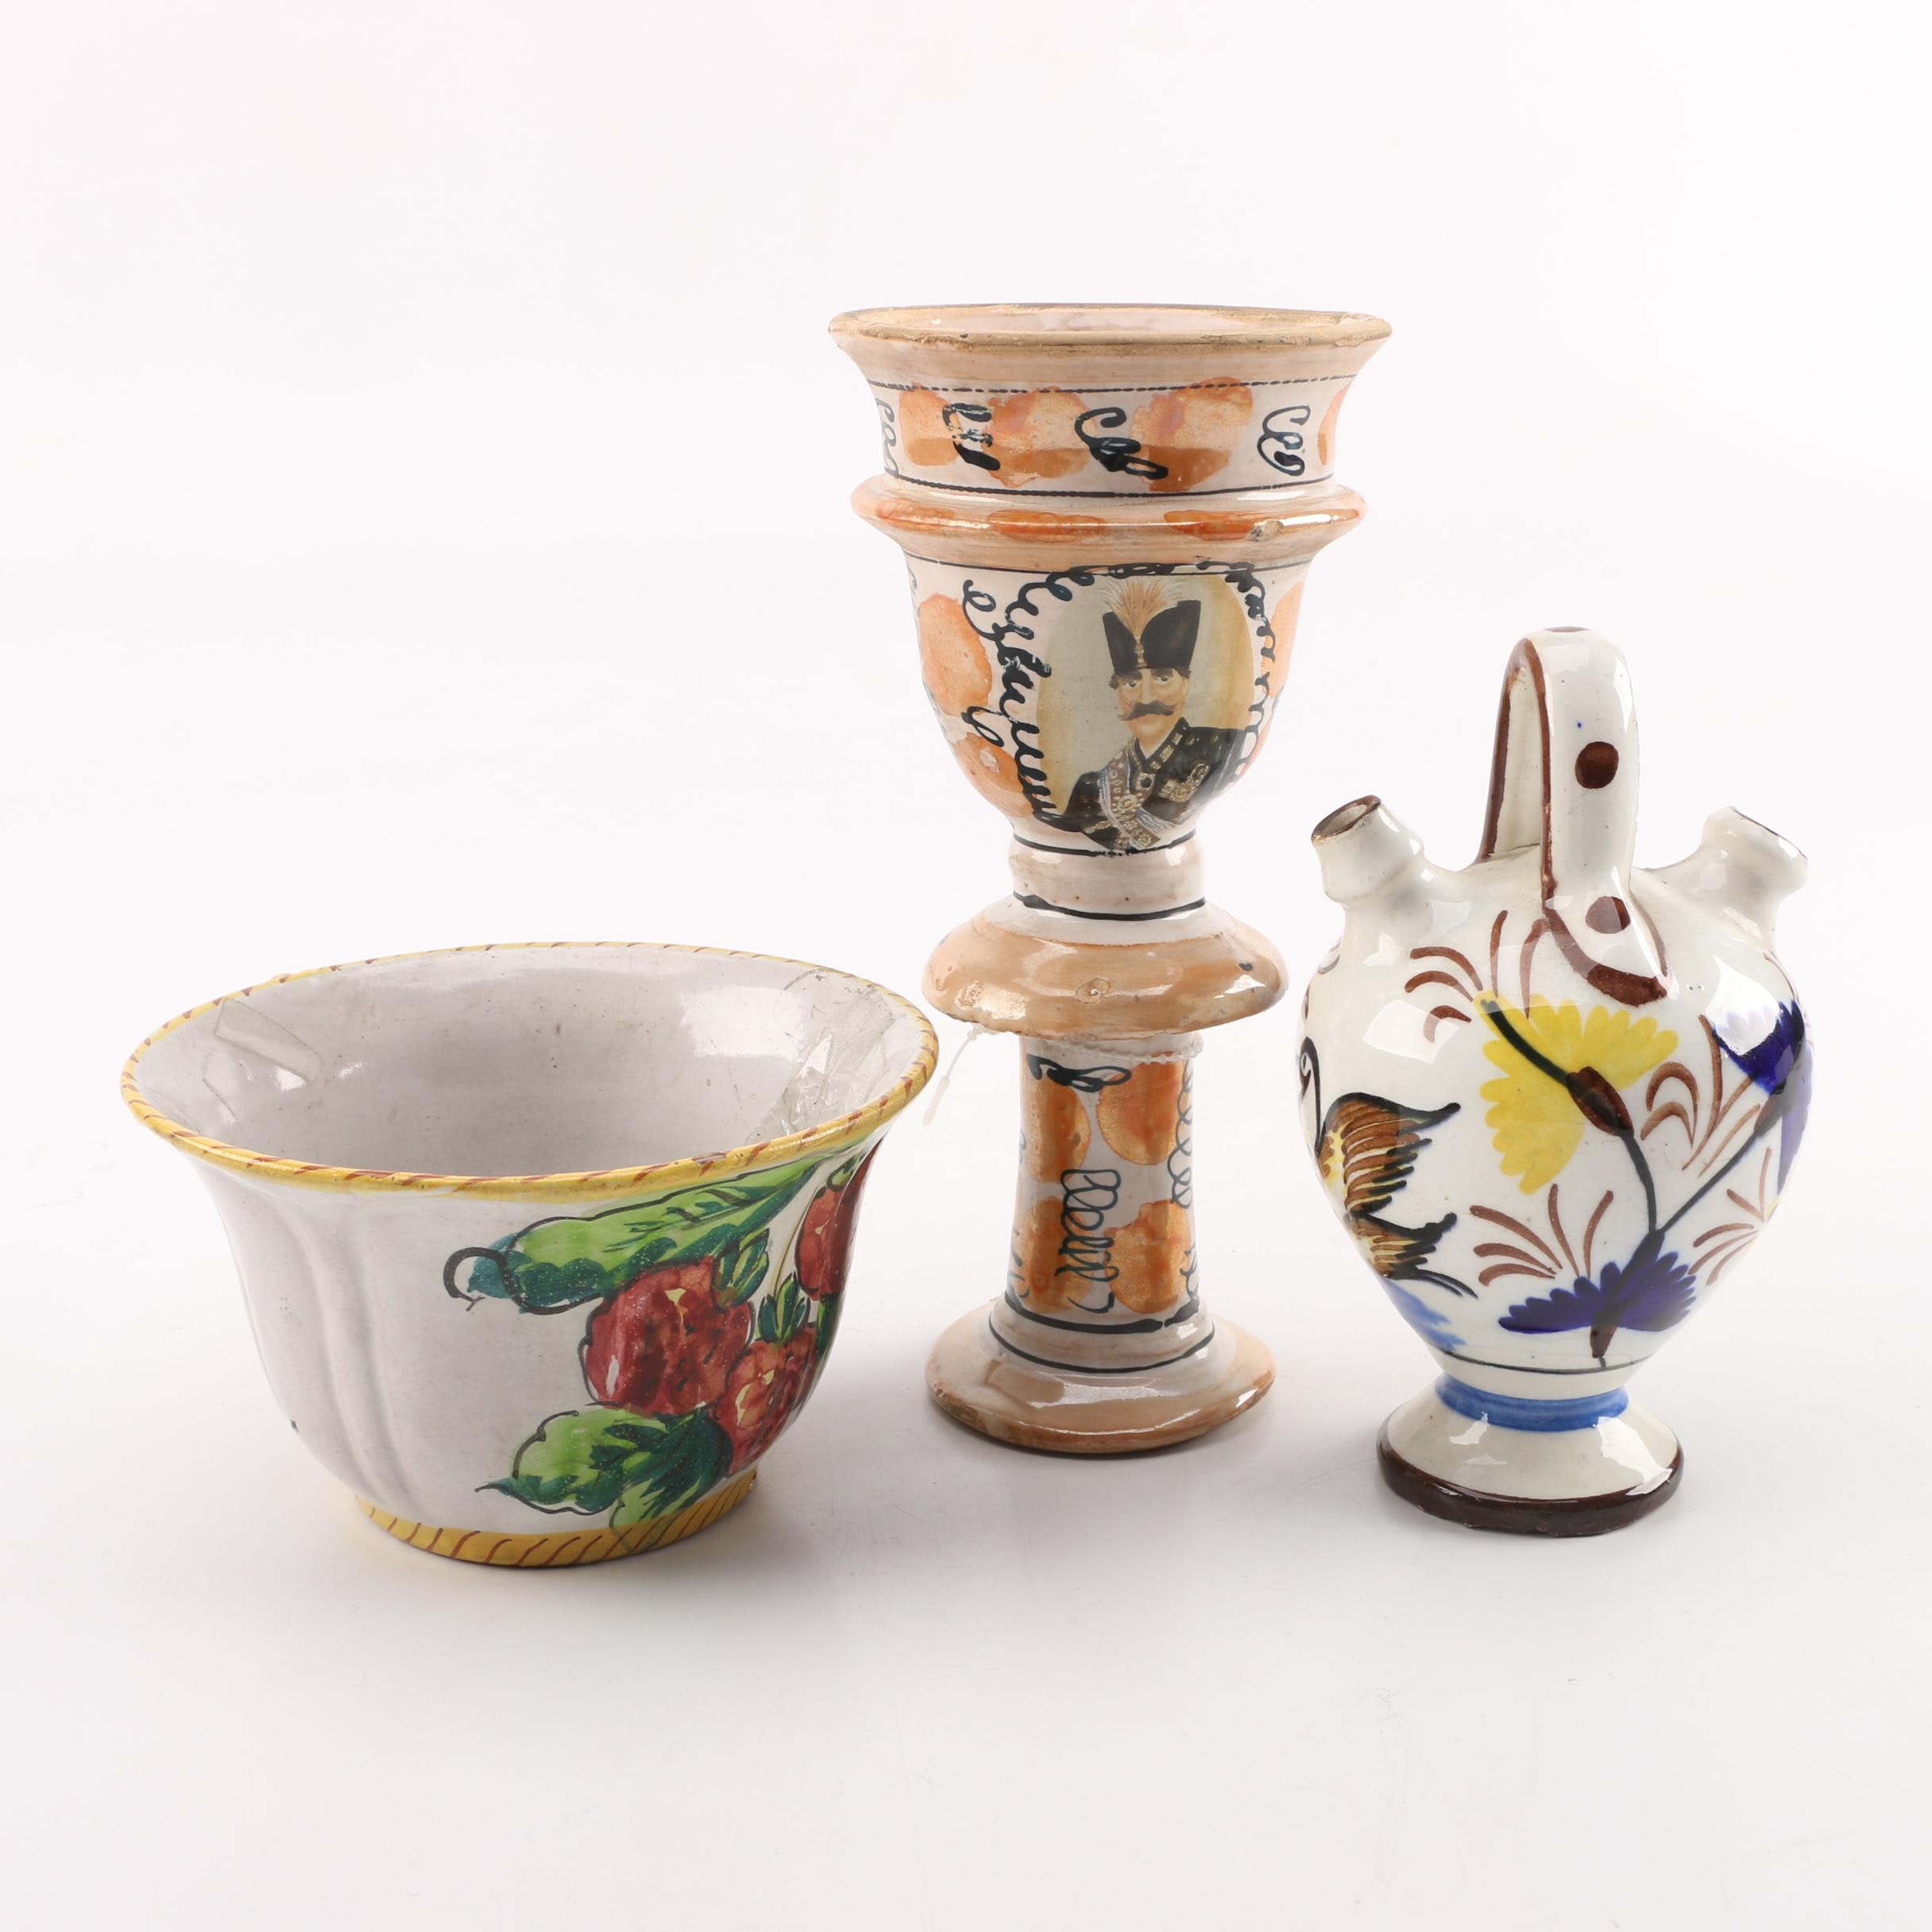 Vintage Hand-Painted Art Pottery Vessels